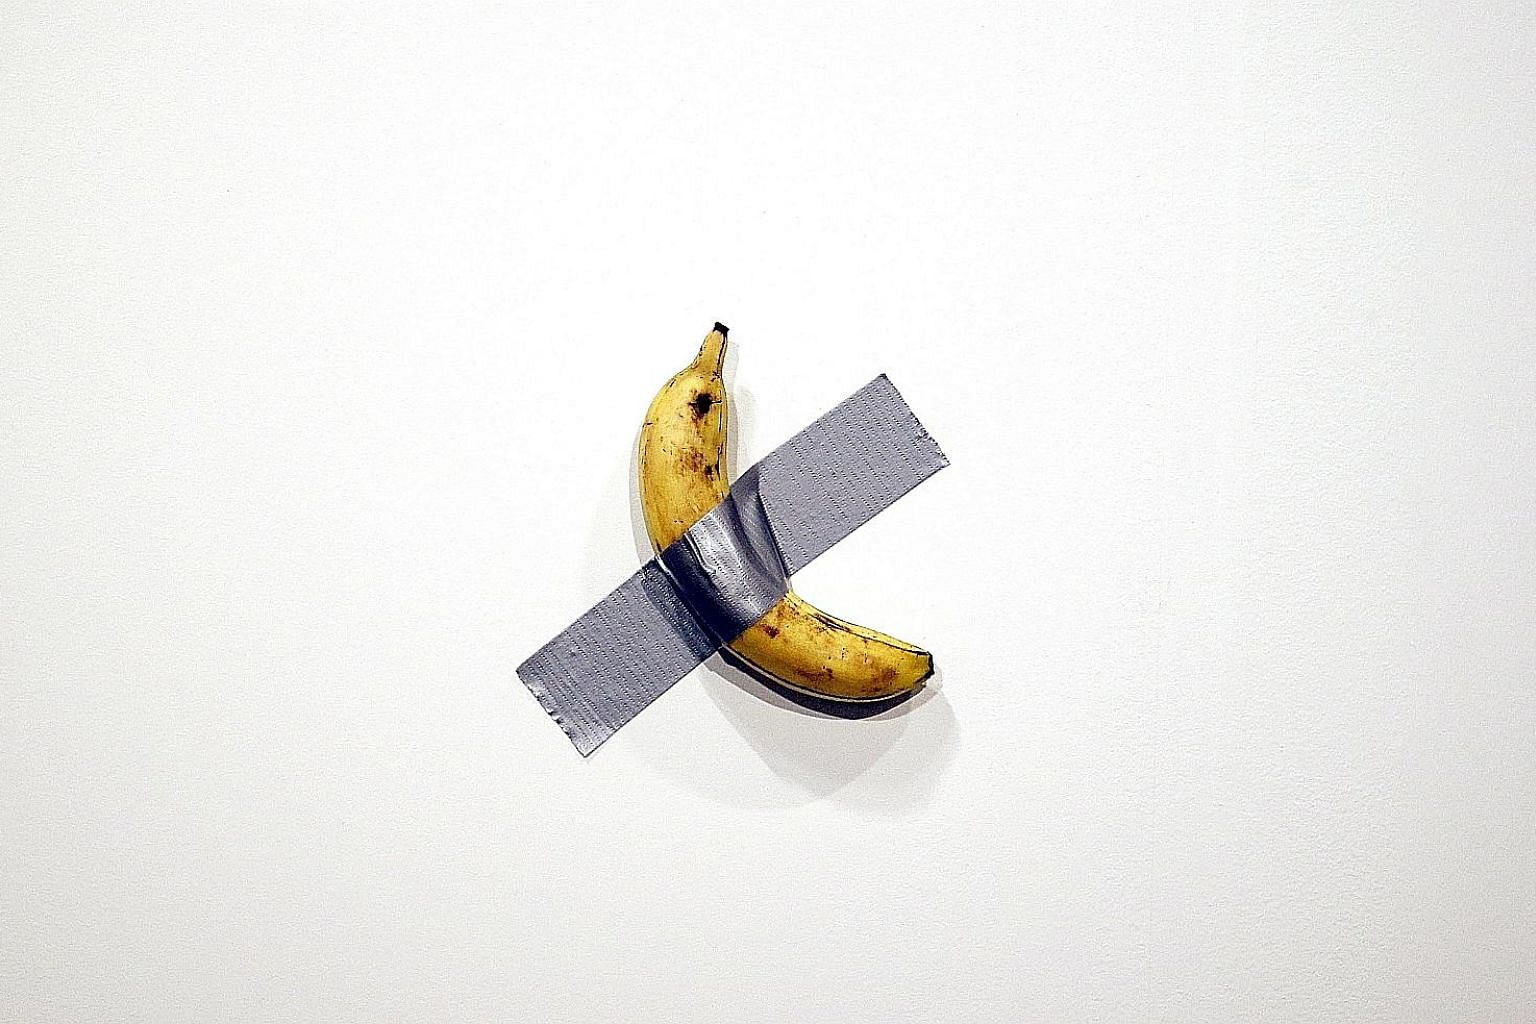 Artist Maurizio Cattelan's piece, Comedian (a banana duct-taped to the wall), was torn from the wall and eaten last week at Art Basel Miami Beach.